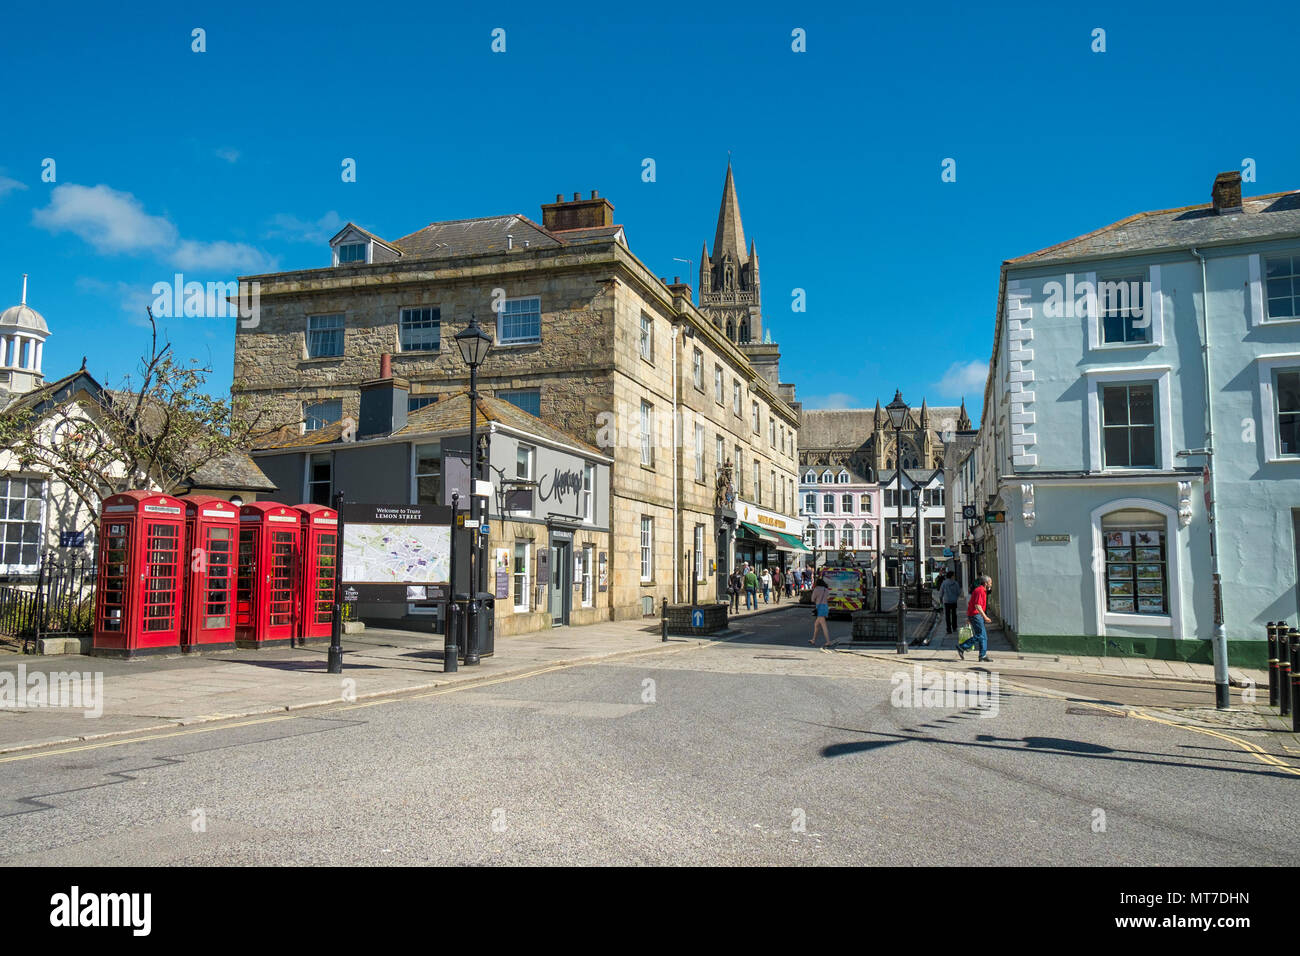 Lemon Street in the City of Truro in Cornwall. - Stock Image